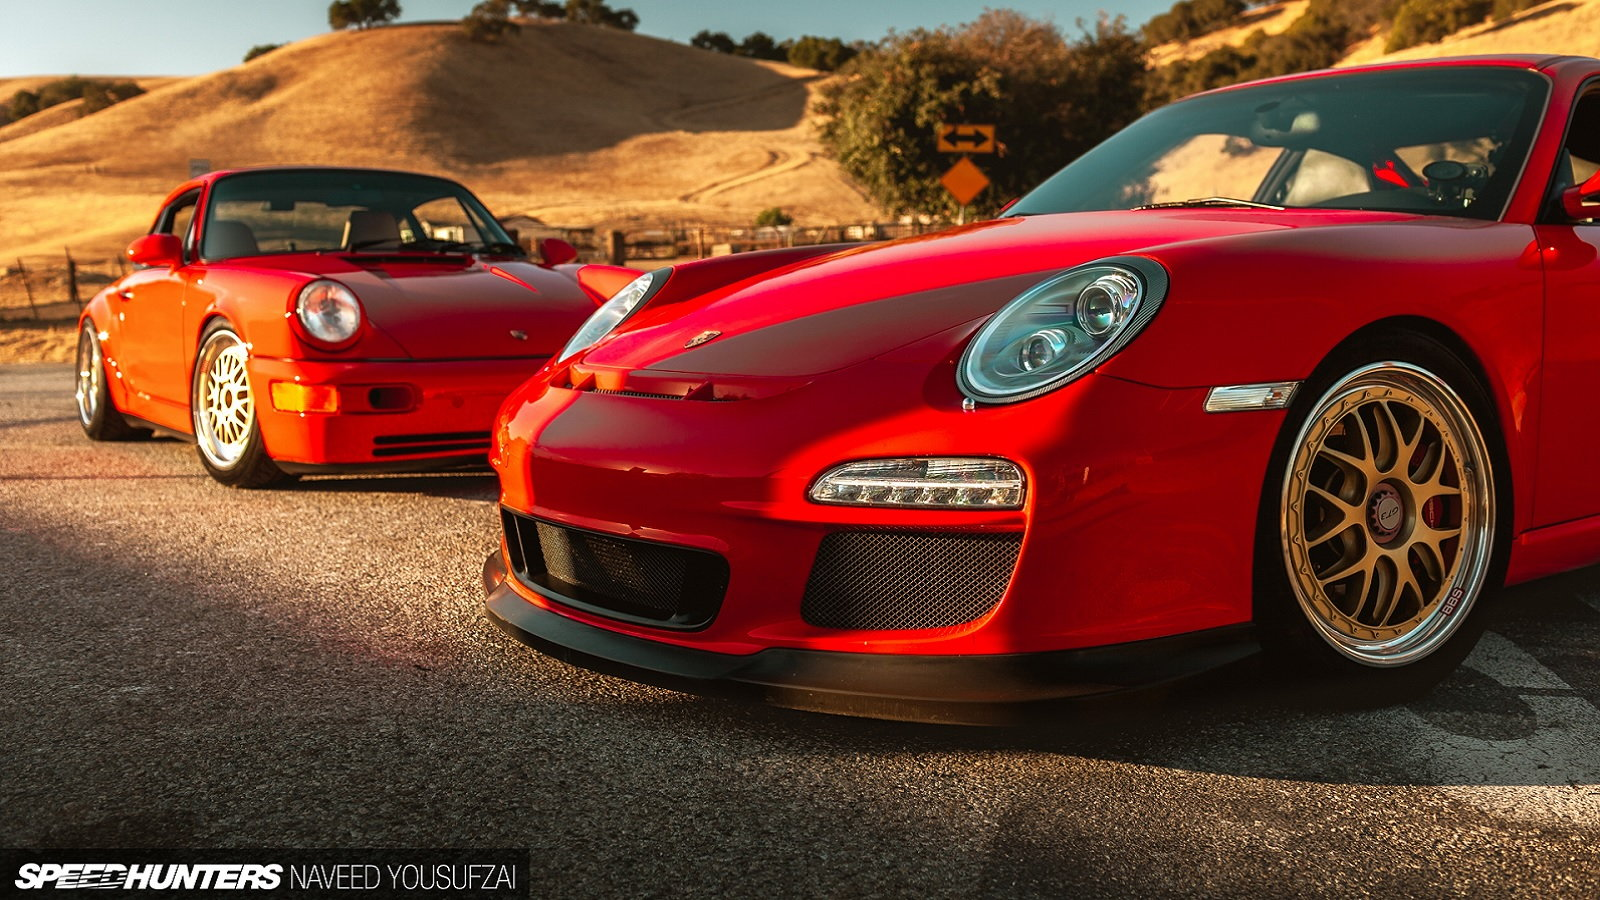 2012 997.2 GT3 and 964 C2 Dressed in Guards Red